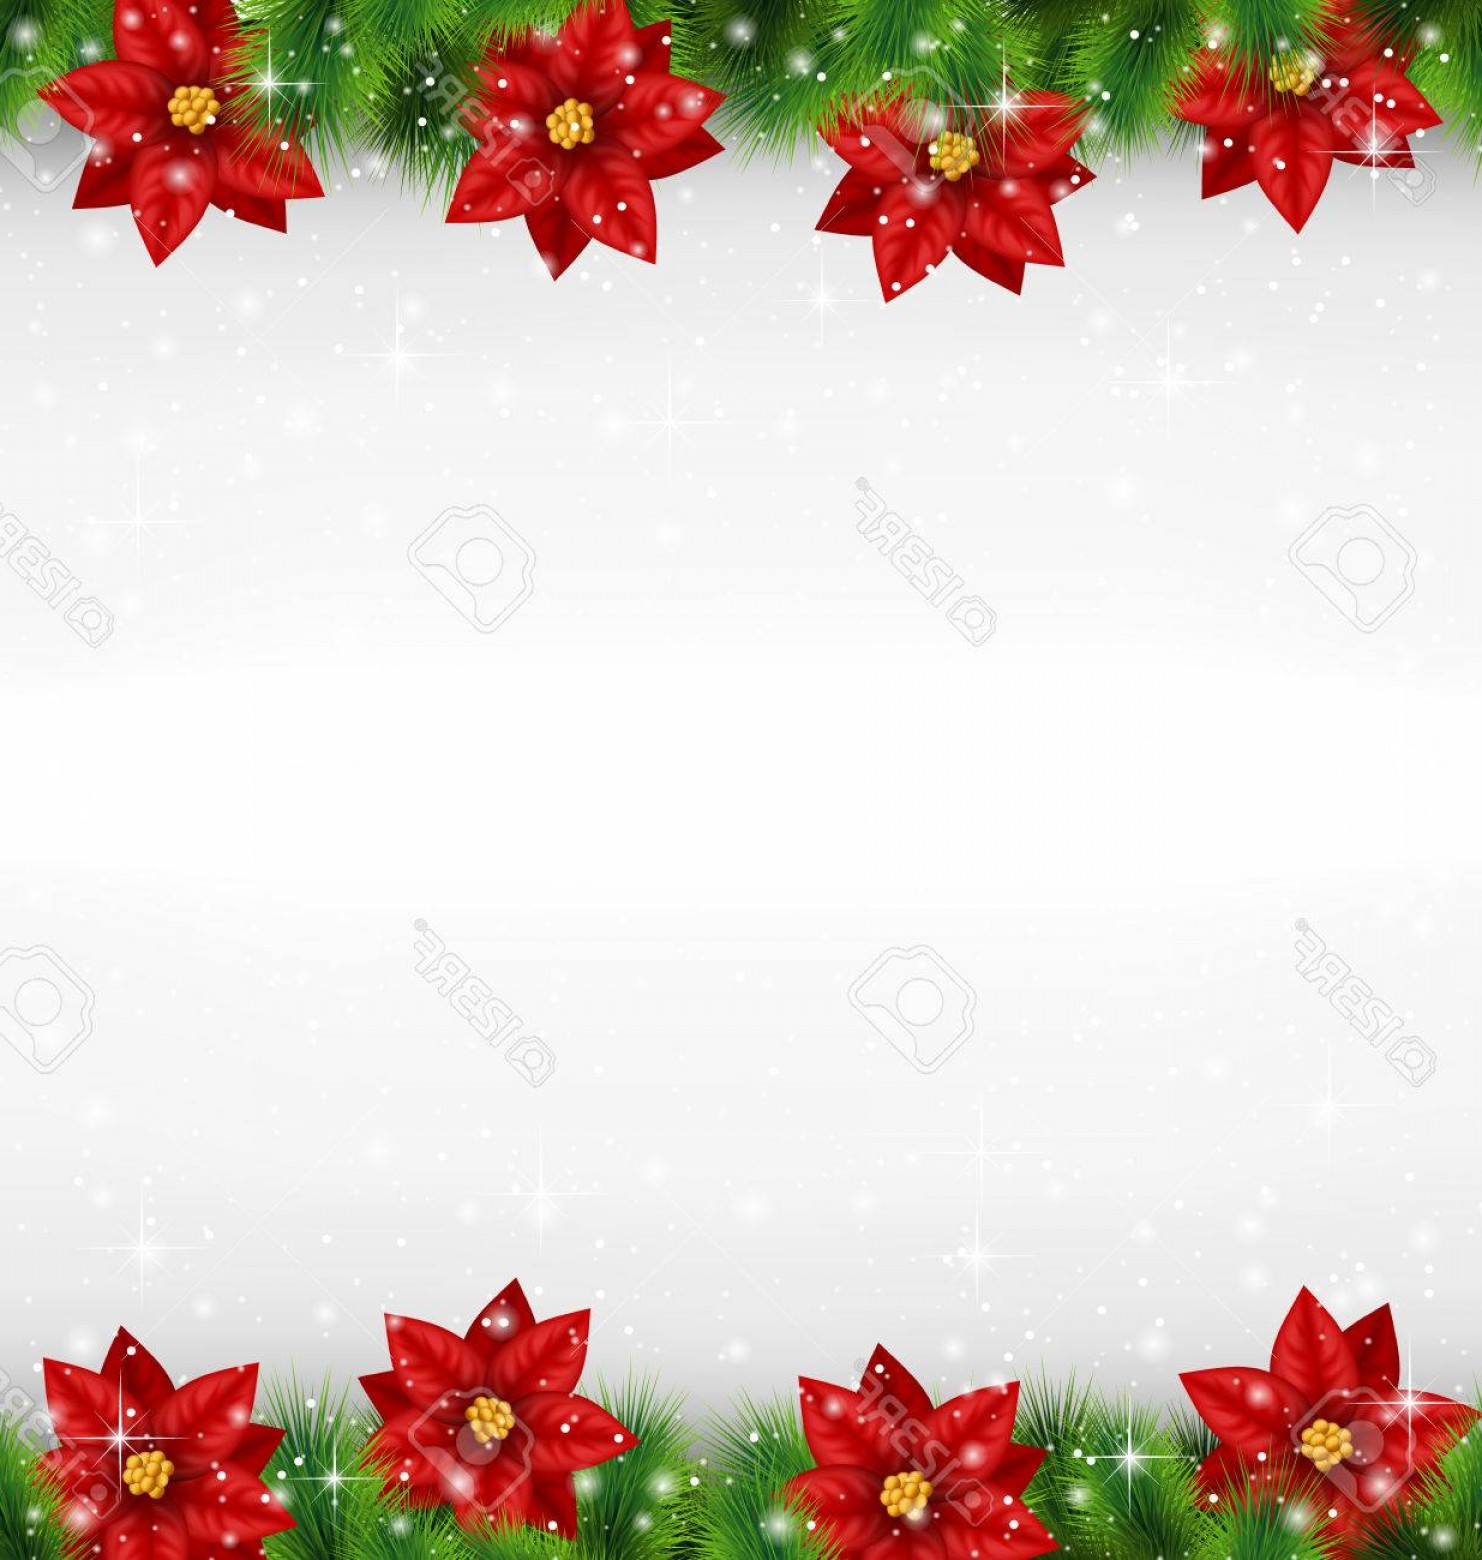 Vector-Based Grayscale Christmas: Photostock Vector Shiny Green Pine Branches Like Frame With Flower Of Poinsettia In Snowfall On Grayscale Background